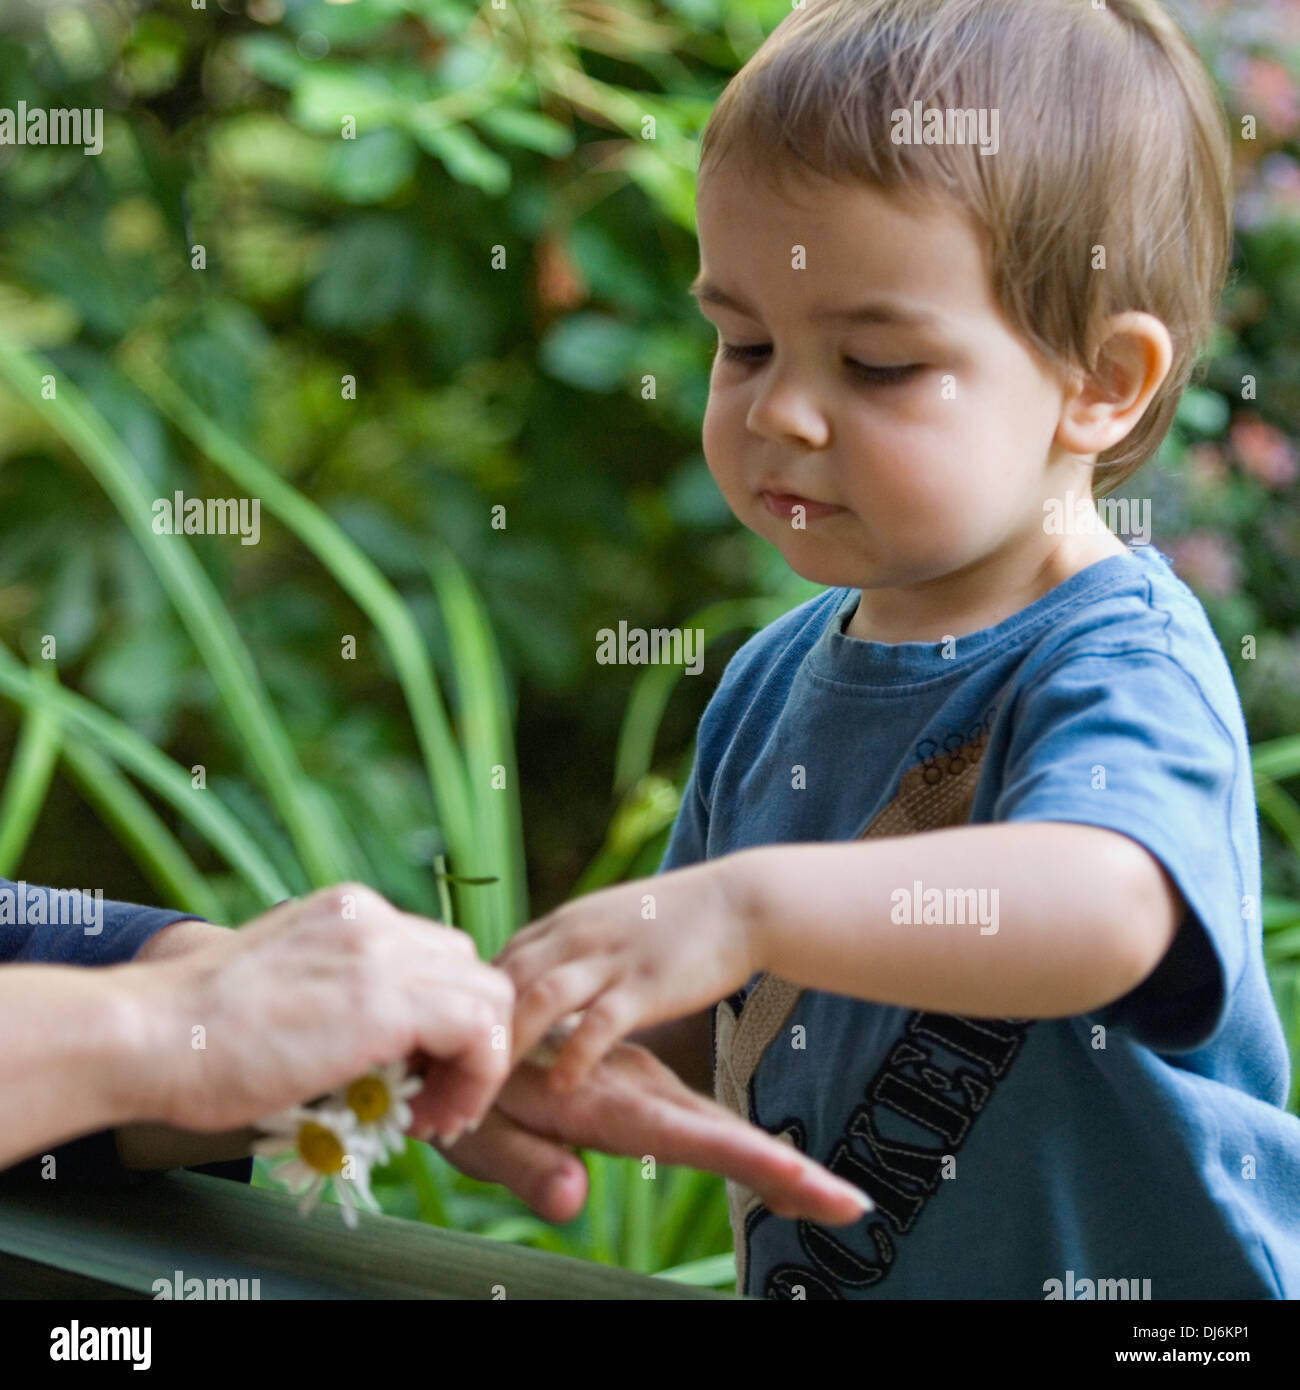 Two Year Old Boy Interacting with His Grandmother Outdoors - Stock Image